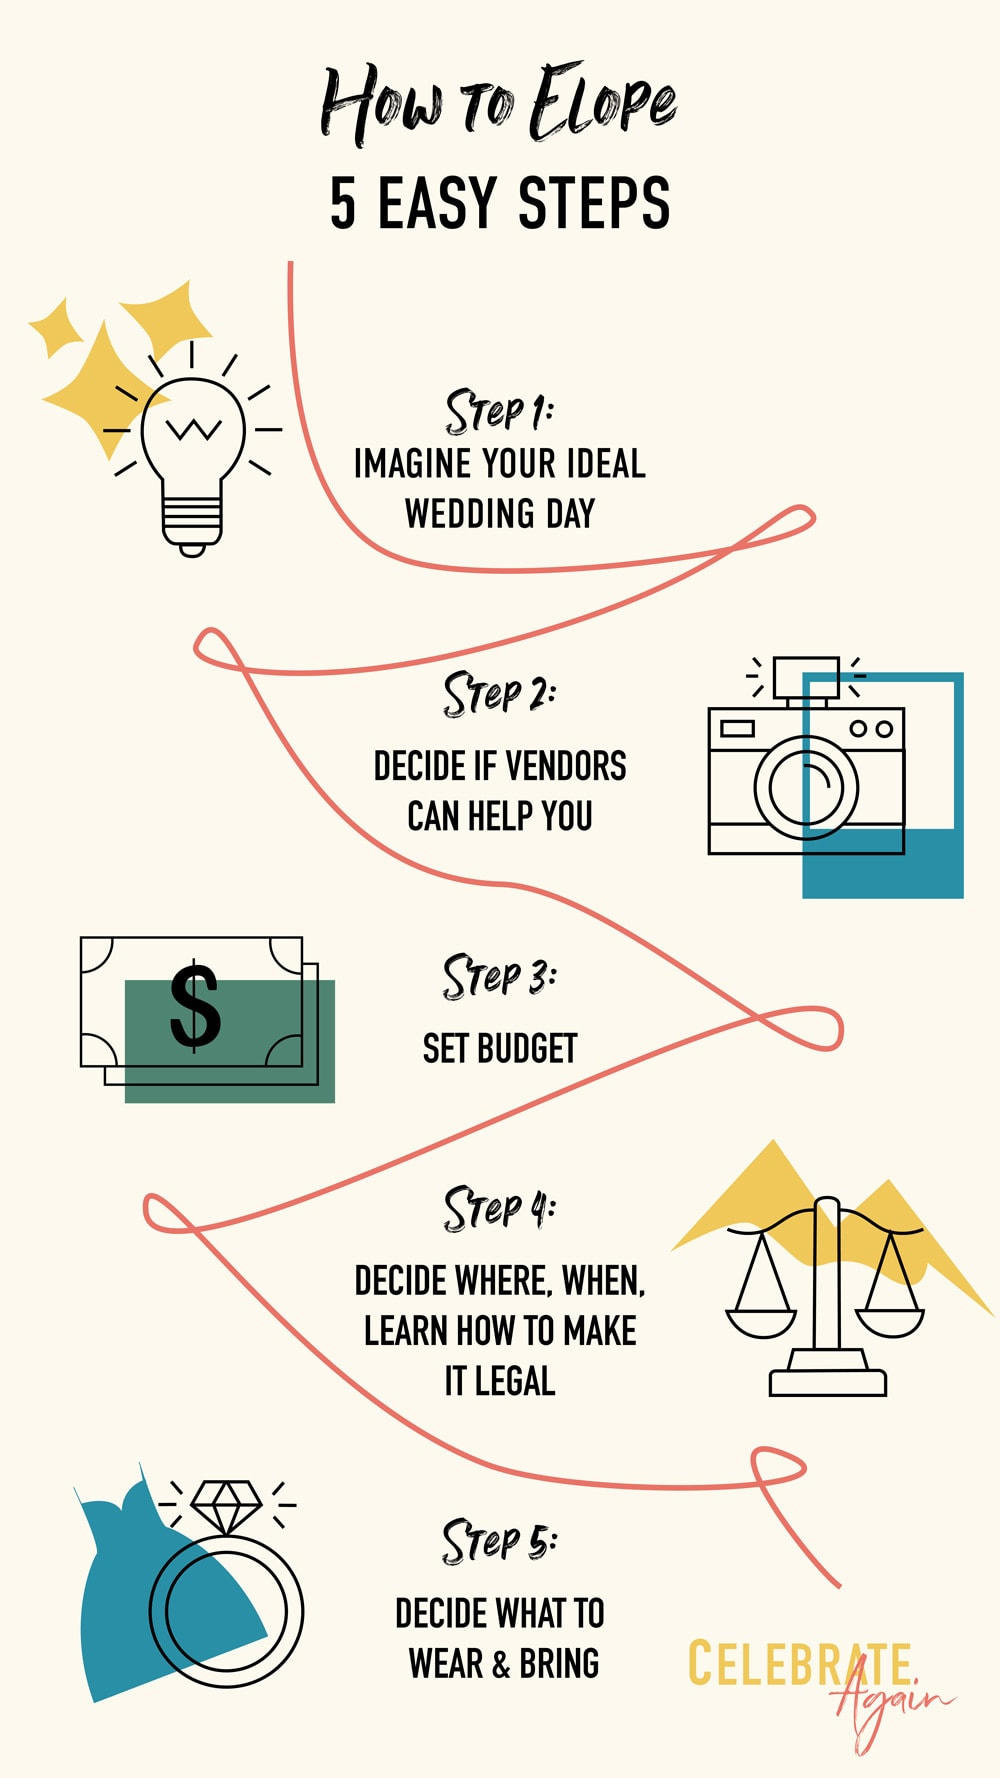 infographic: how to elope in 5 easy steps image of lightbulb and step 1 imagine your ideal wedding day. Step 2 decide if vendors can help you graphic of camera, step 3 set budget graphic if dollar bill, step 4 decided where, when, learn how to make it legal graphic of mountains and law scales, step 5 decided what to bring and wear graphic of dress and ring and celebrate again logo